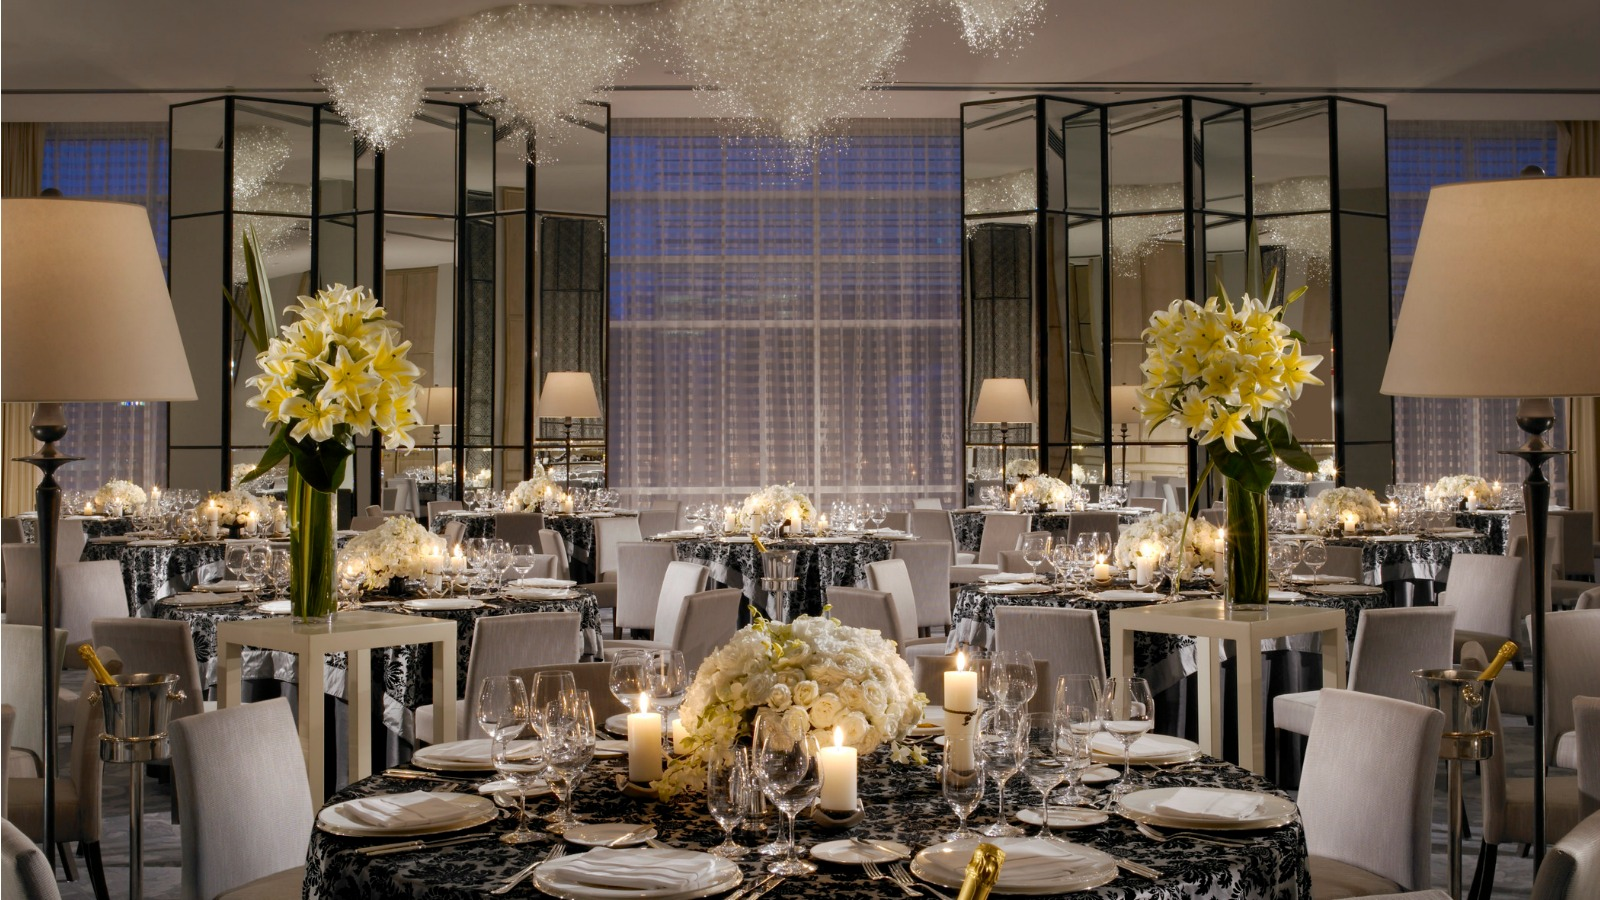 The St Regis Mexico City - Astor Ballroom